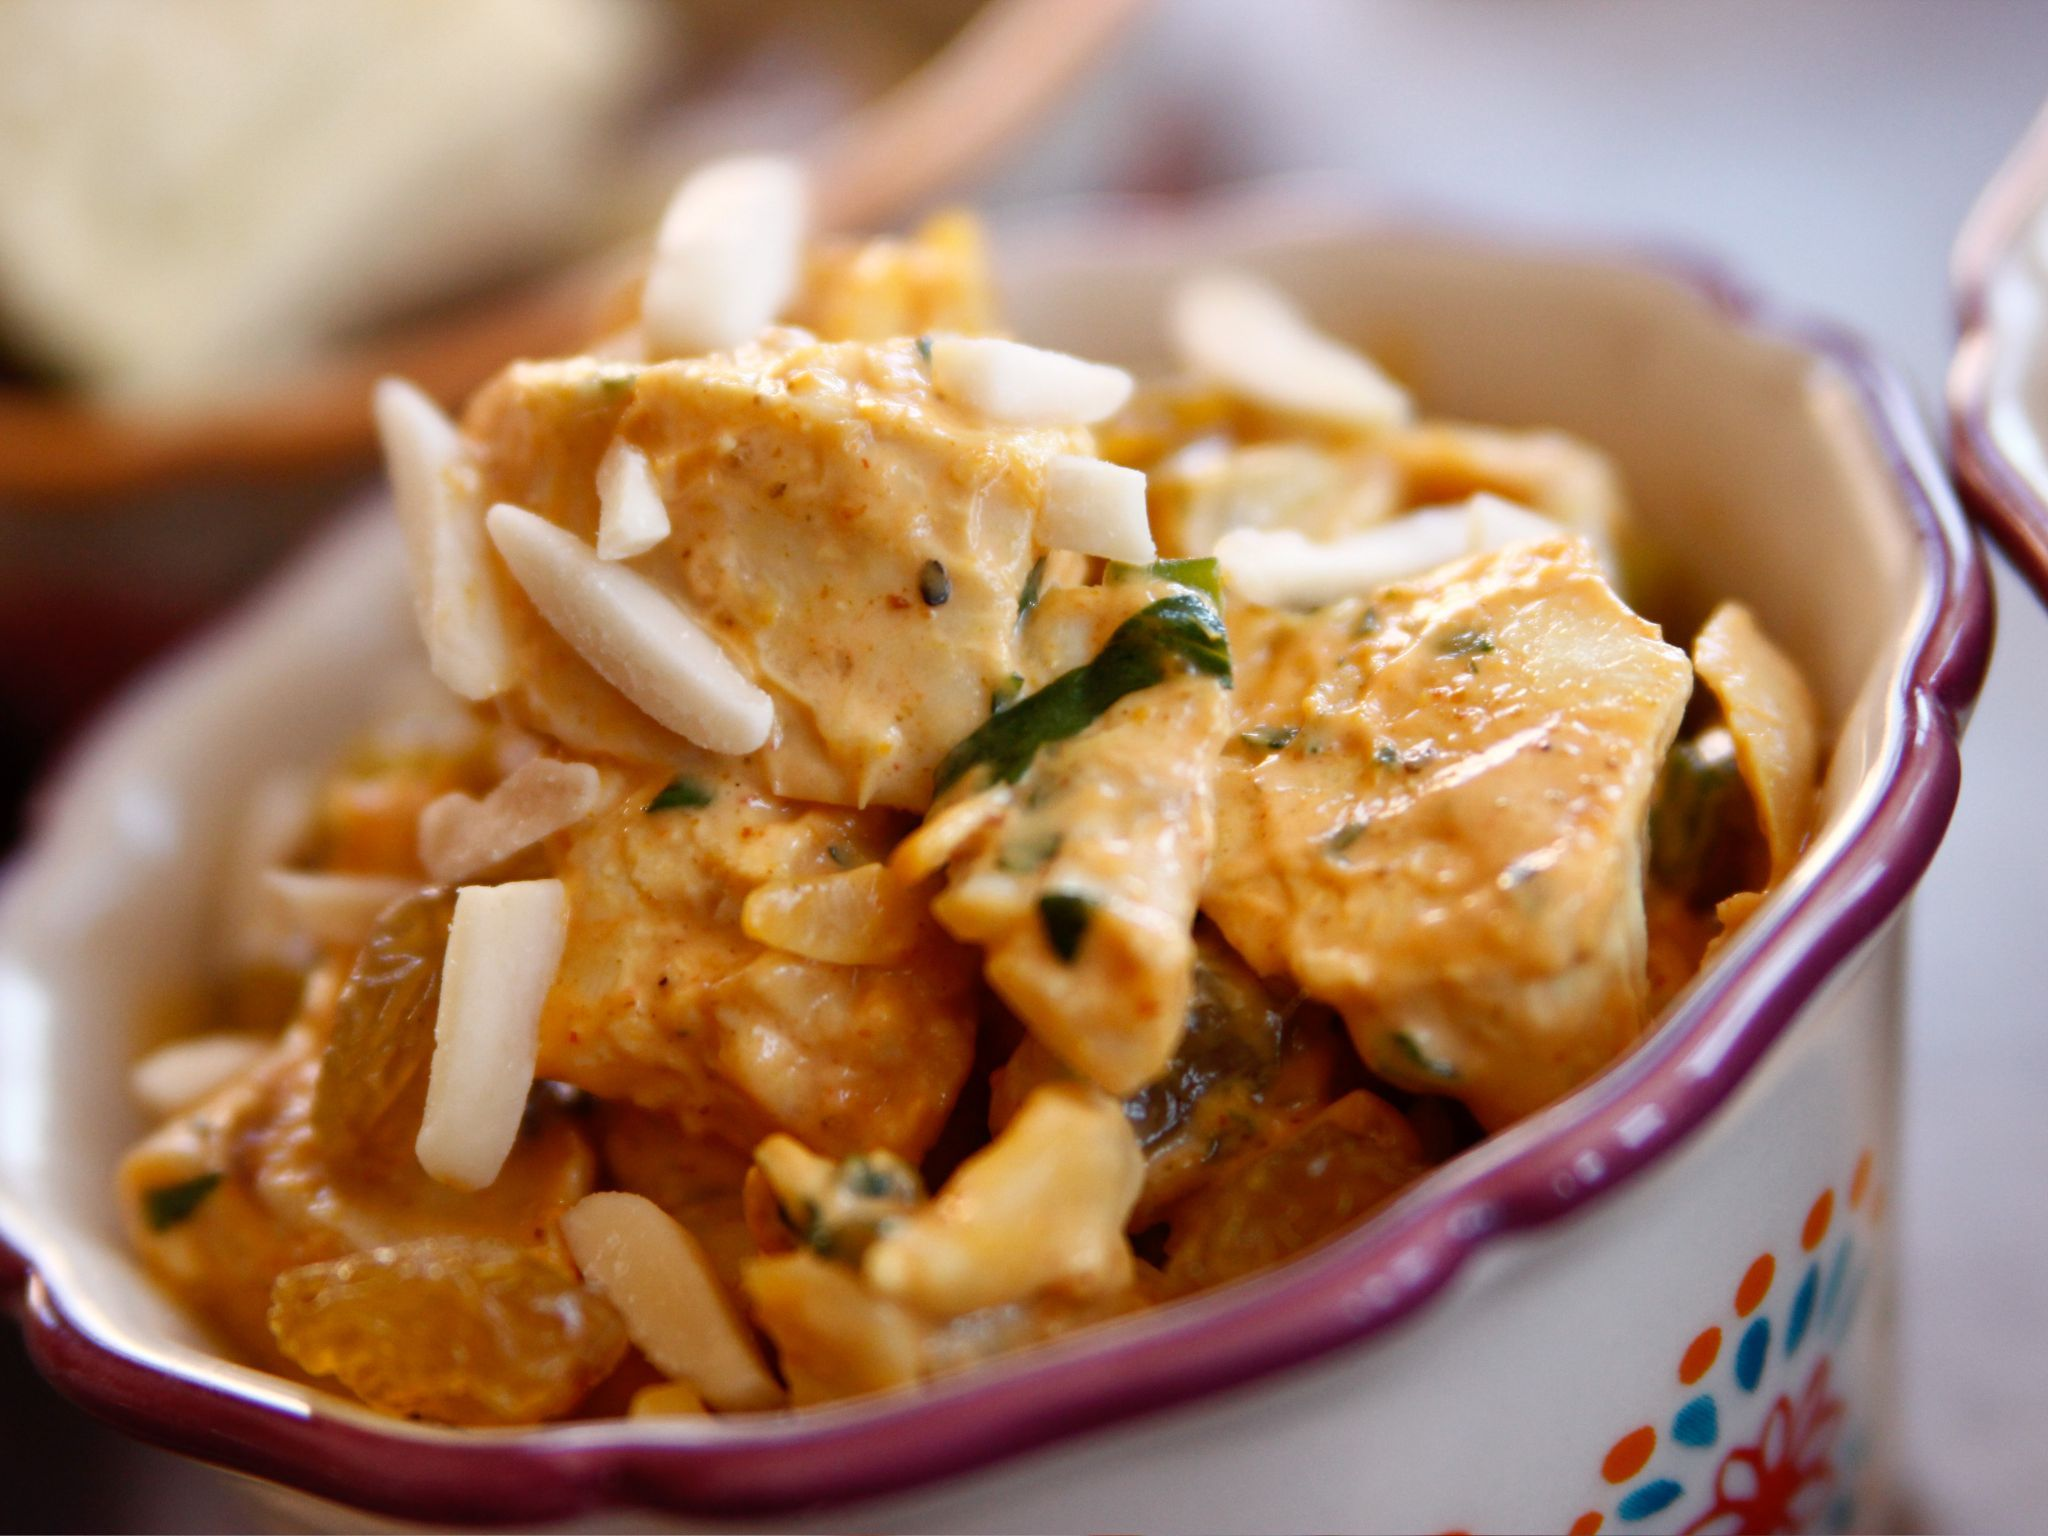 Curried chicken salad recipe curried chicken salads curry and salad curried chicken salad pioneer woman food networkthe forumfinder Image collections